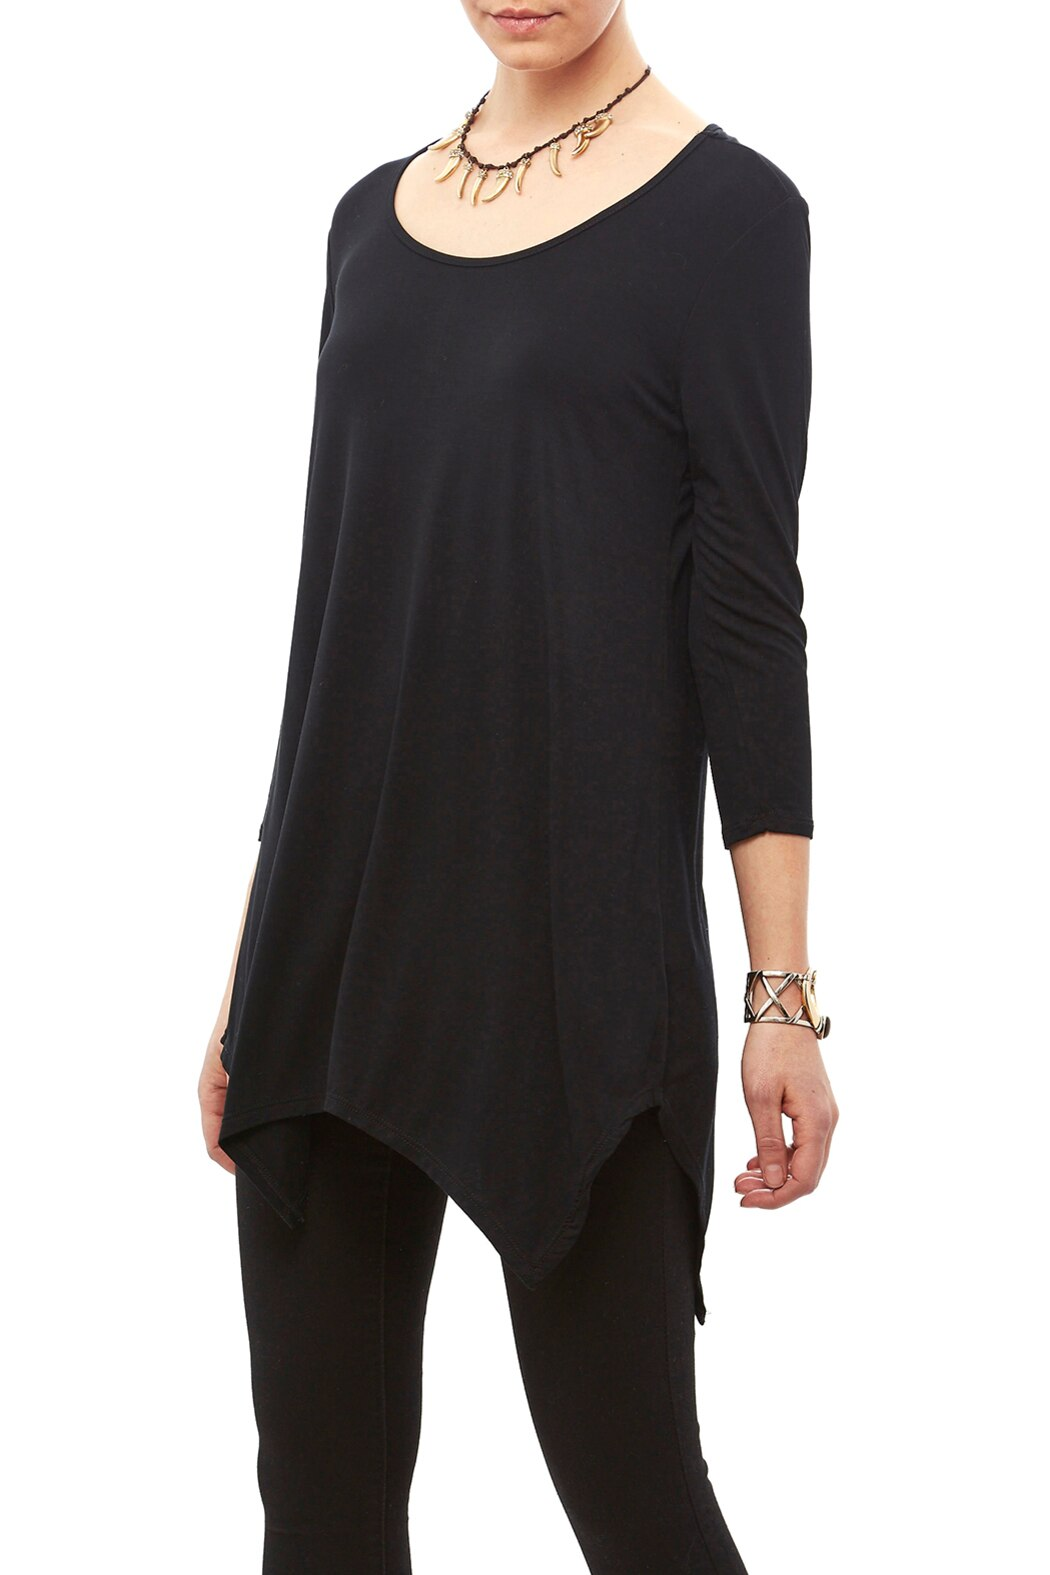 Black long sleeve with mesh shoulders